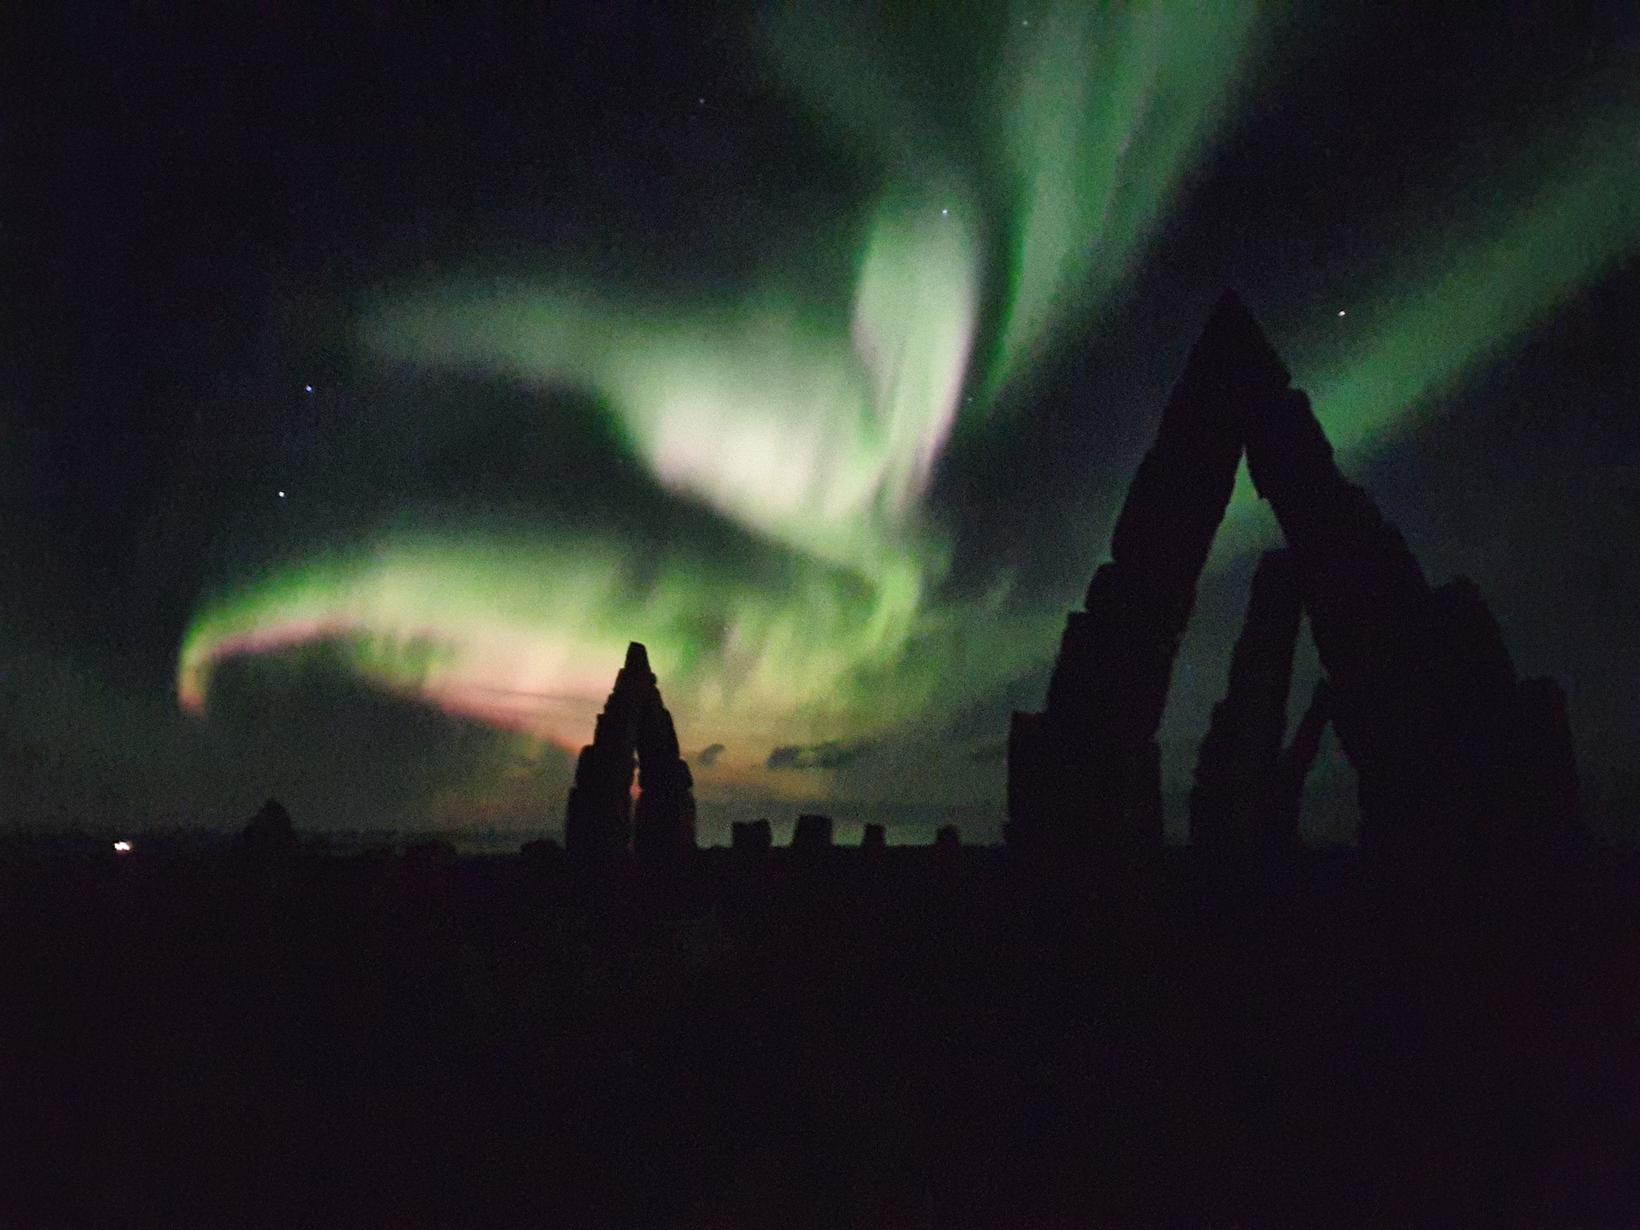 The northern lights, with the Arctic Henge in the foreground.